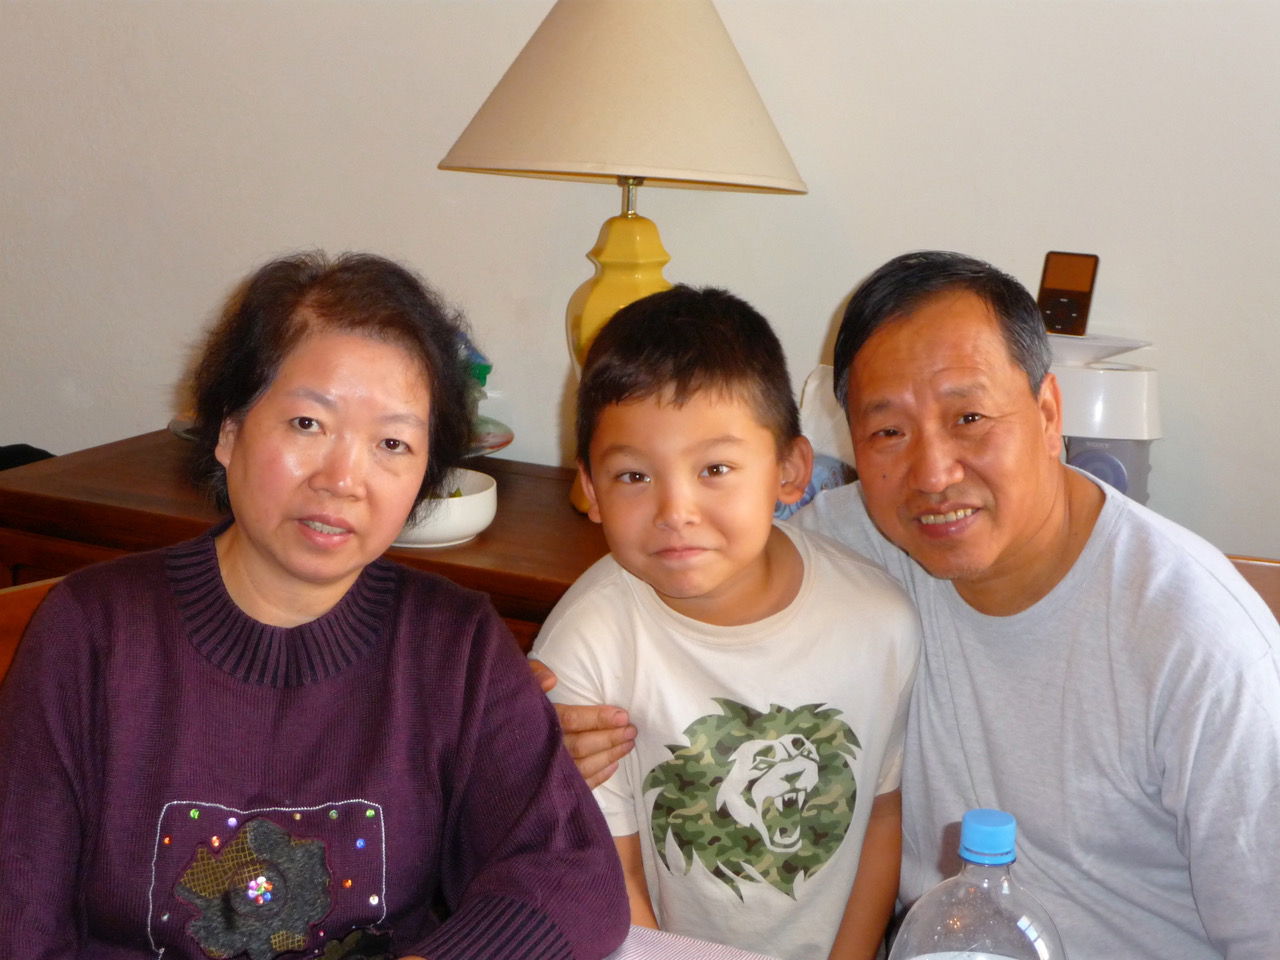 5-year-old Matteo N. Wong '22 sits with his grandparents in his home in Brooklyn.